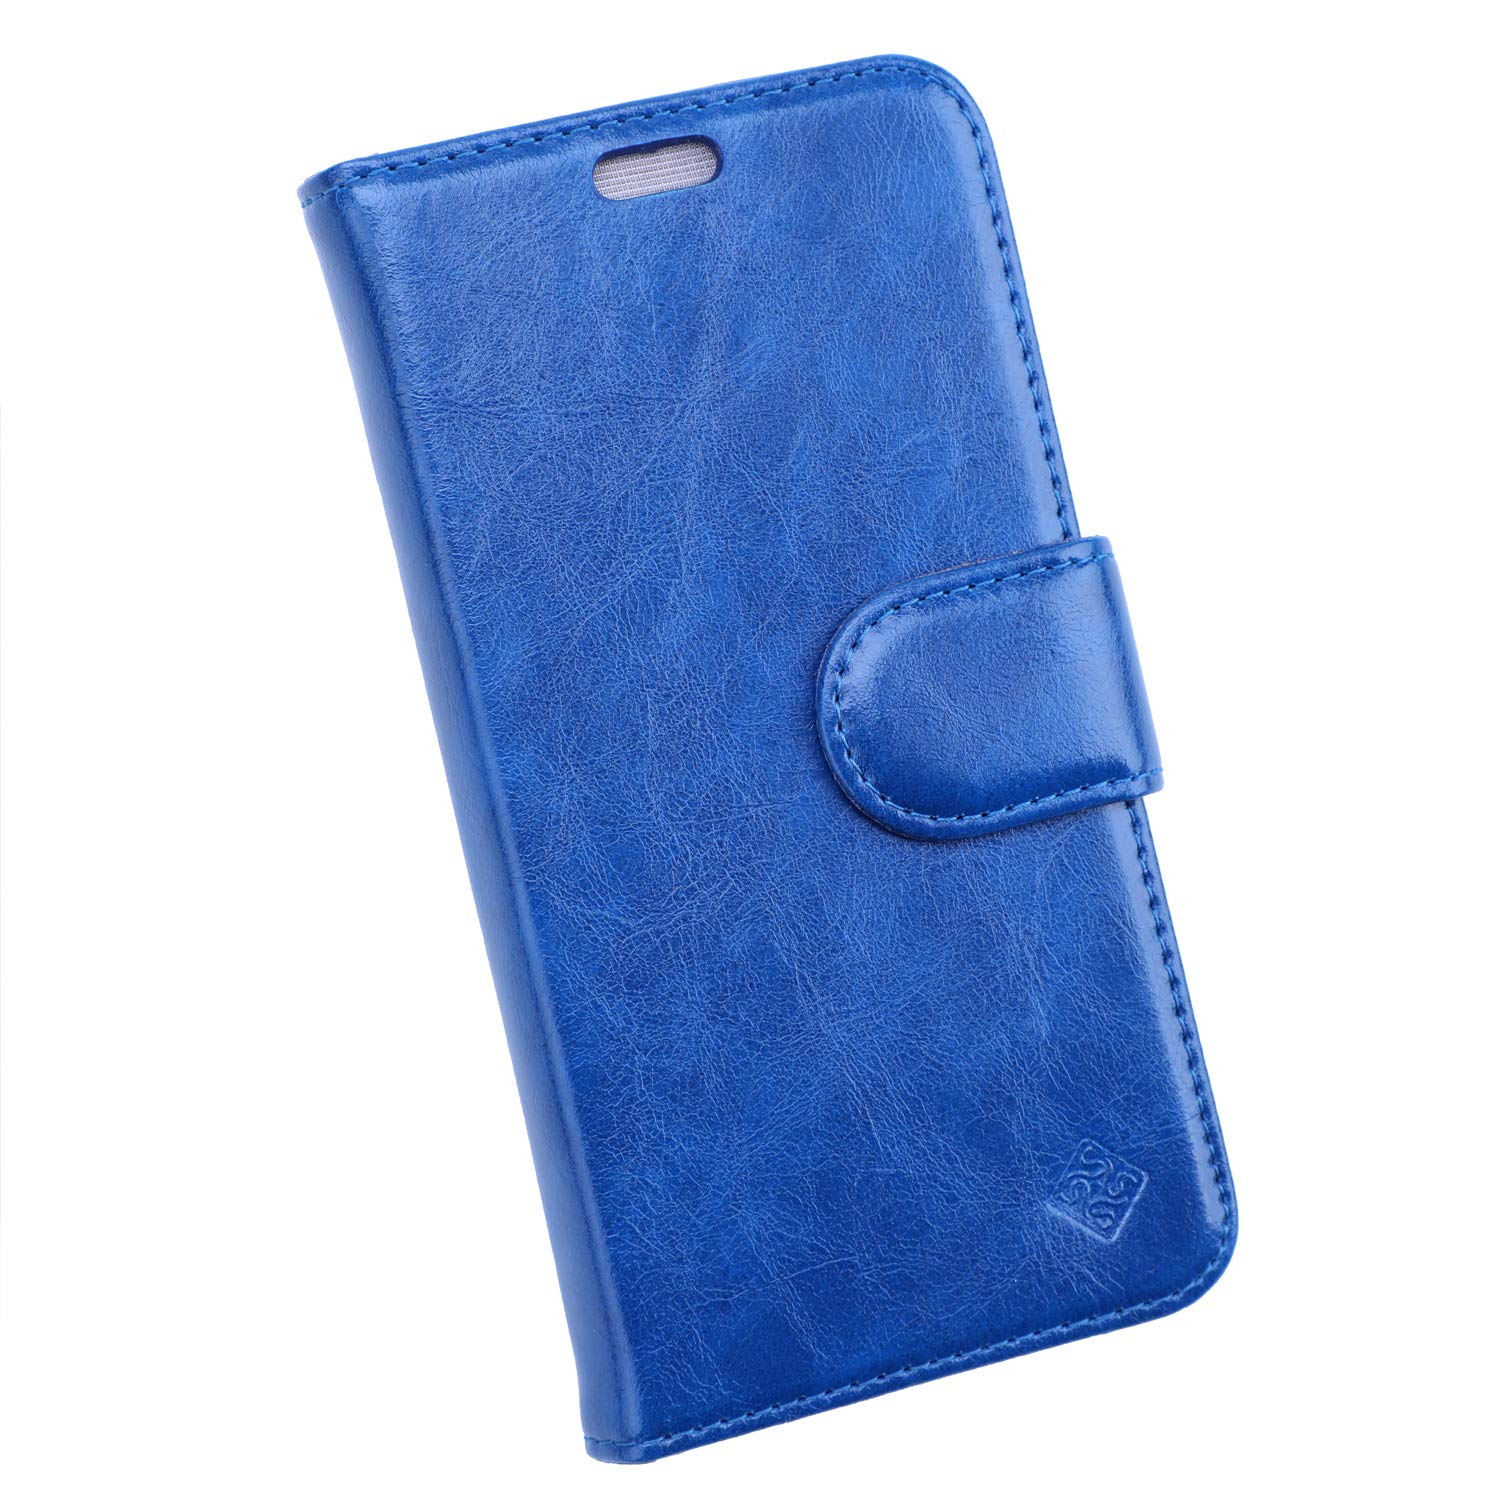 Sanxir Anti-Radiation Case, EMF and RF Protection Wallet Case Against Drops and Bump for Samsung Galaxy S9 with A New Classes of Nanoscale Graphene-Based Materials, with RFID Protection. (Blue)